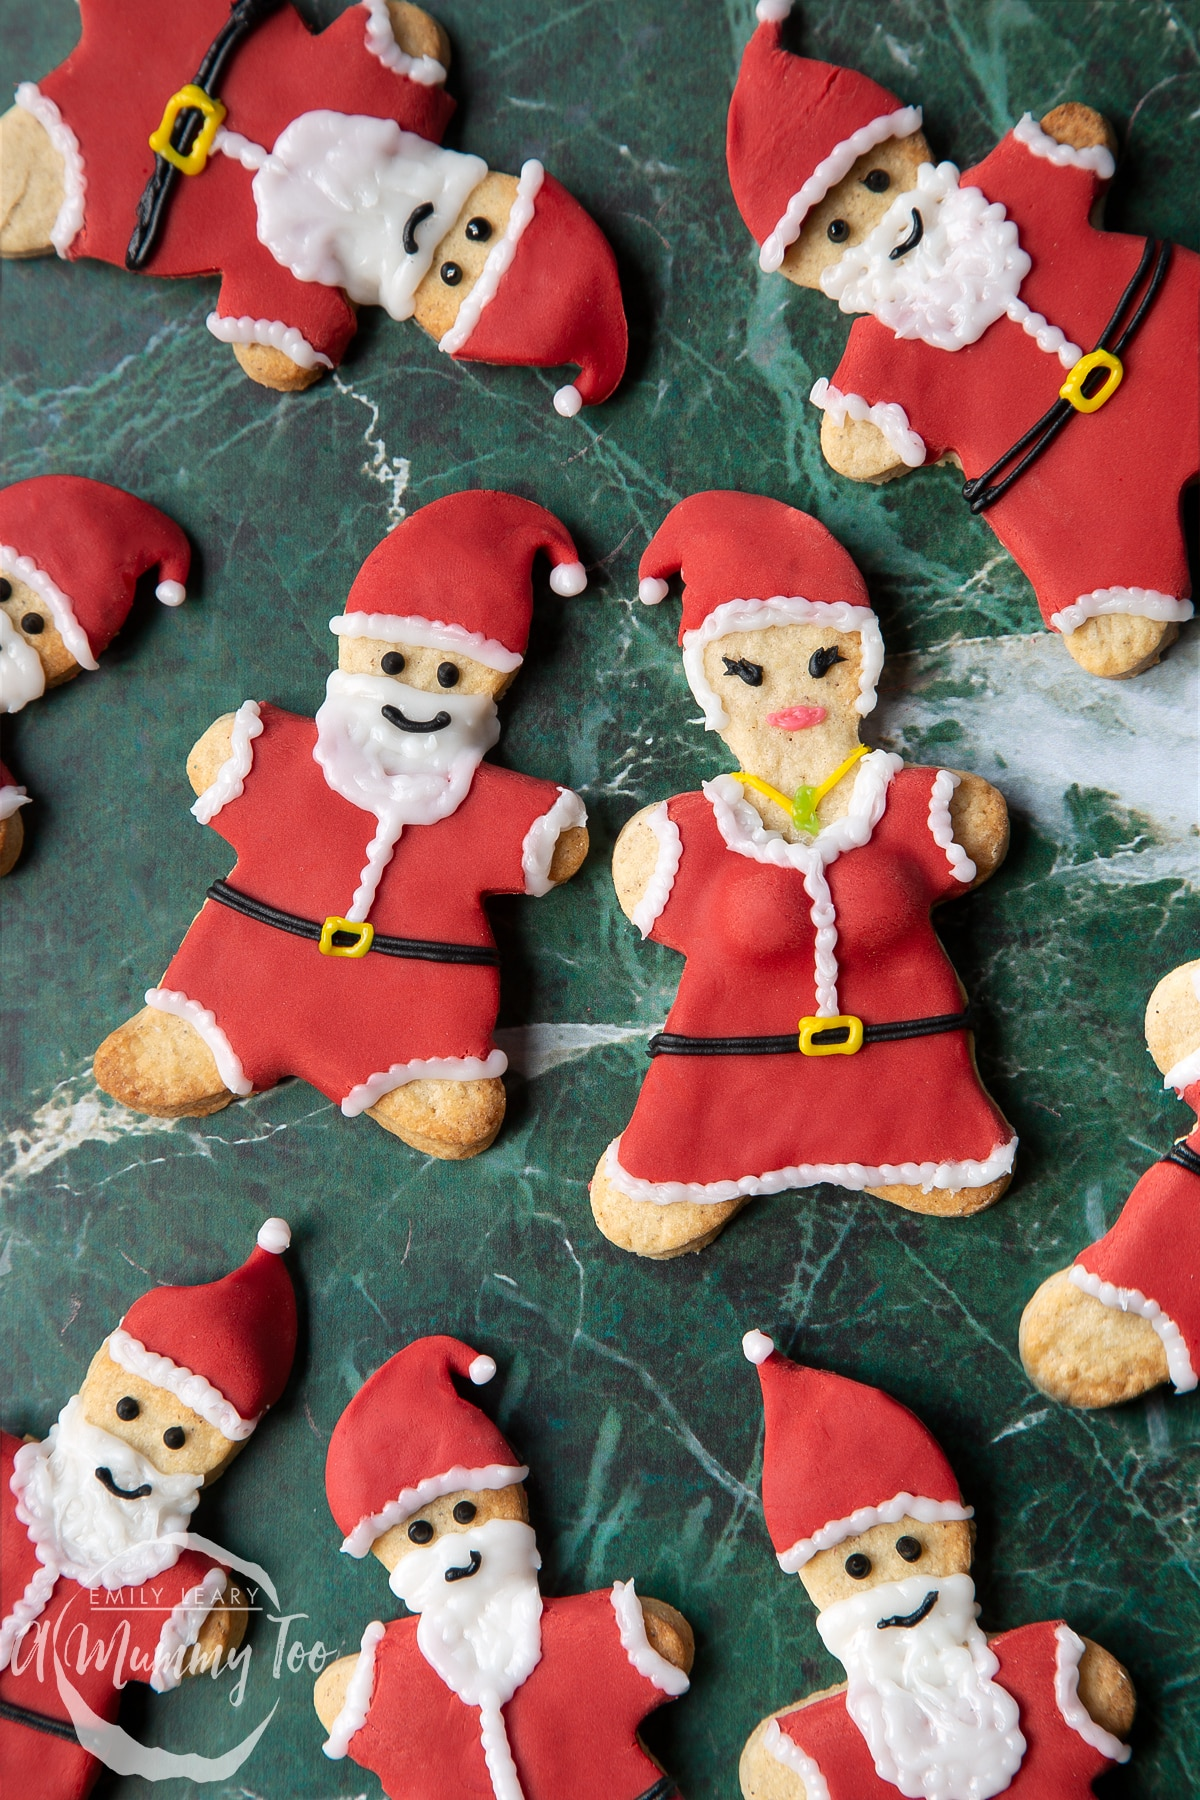 Lots of Father Christmas cookies on a green marble surface. There is also a Mother Christmas cookie.